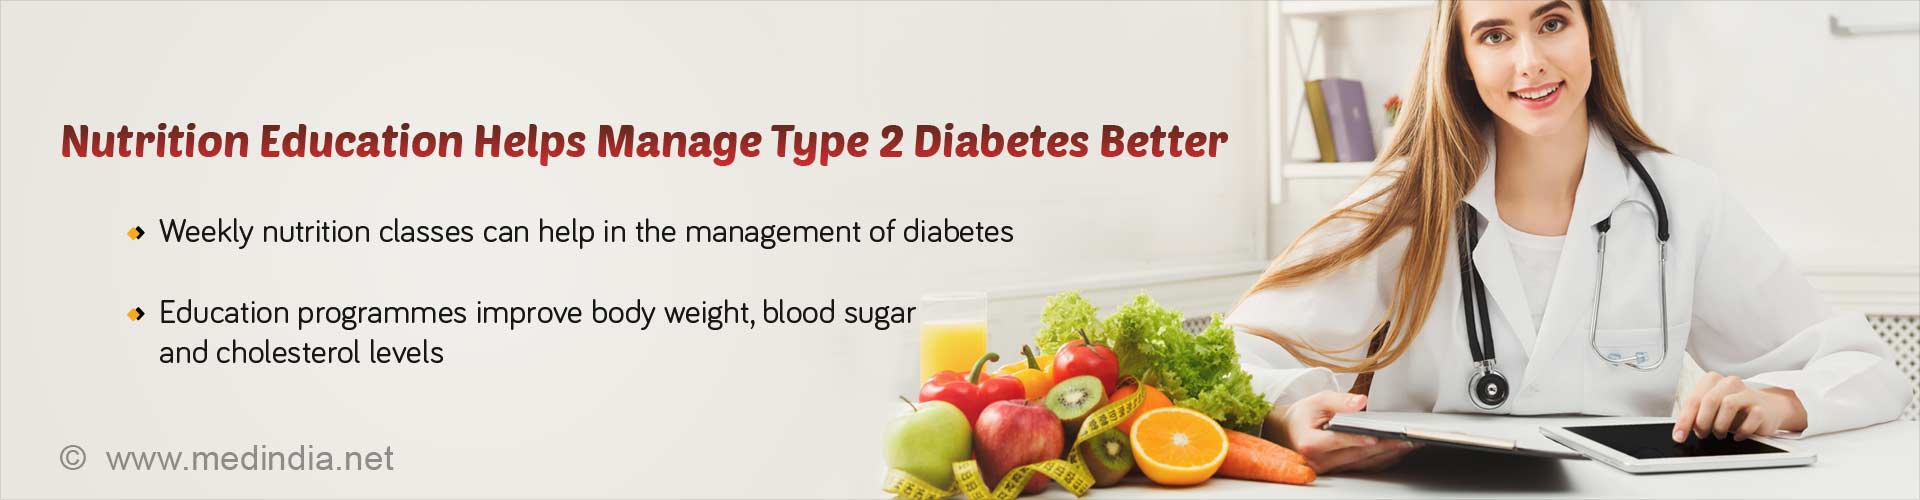 Weekly Nutrition Classes Help Improve Type 2 Diabetes